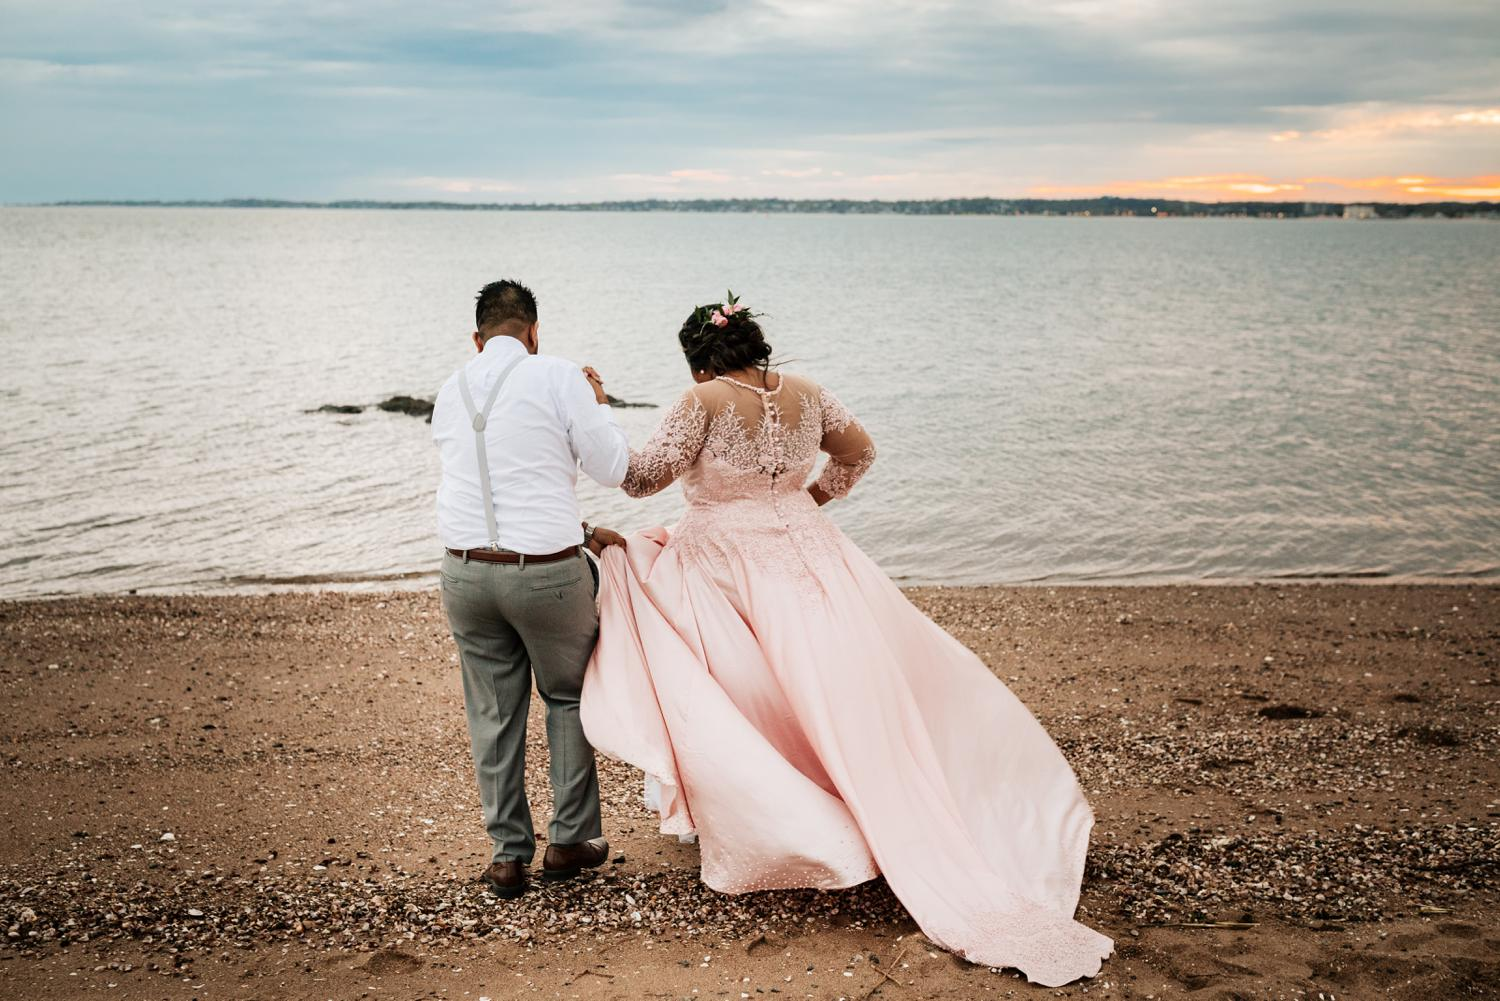 16. adventurous-boston-wedding-photographer-natural-albuquerque-fun-Andrea-van-orsouw-photography2.jpg